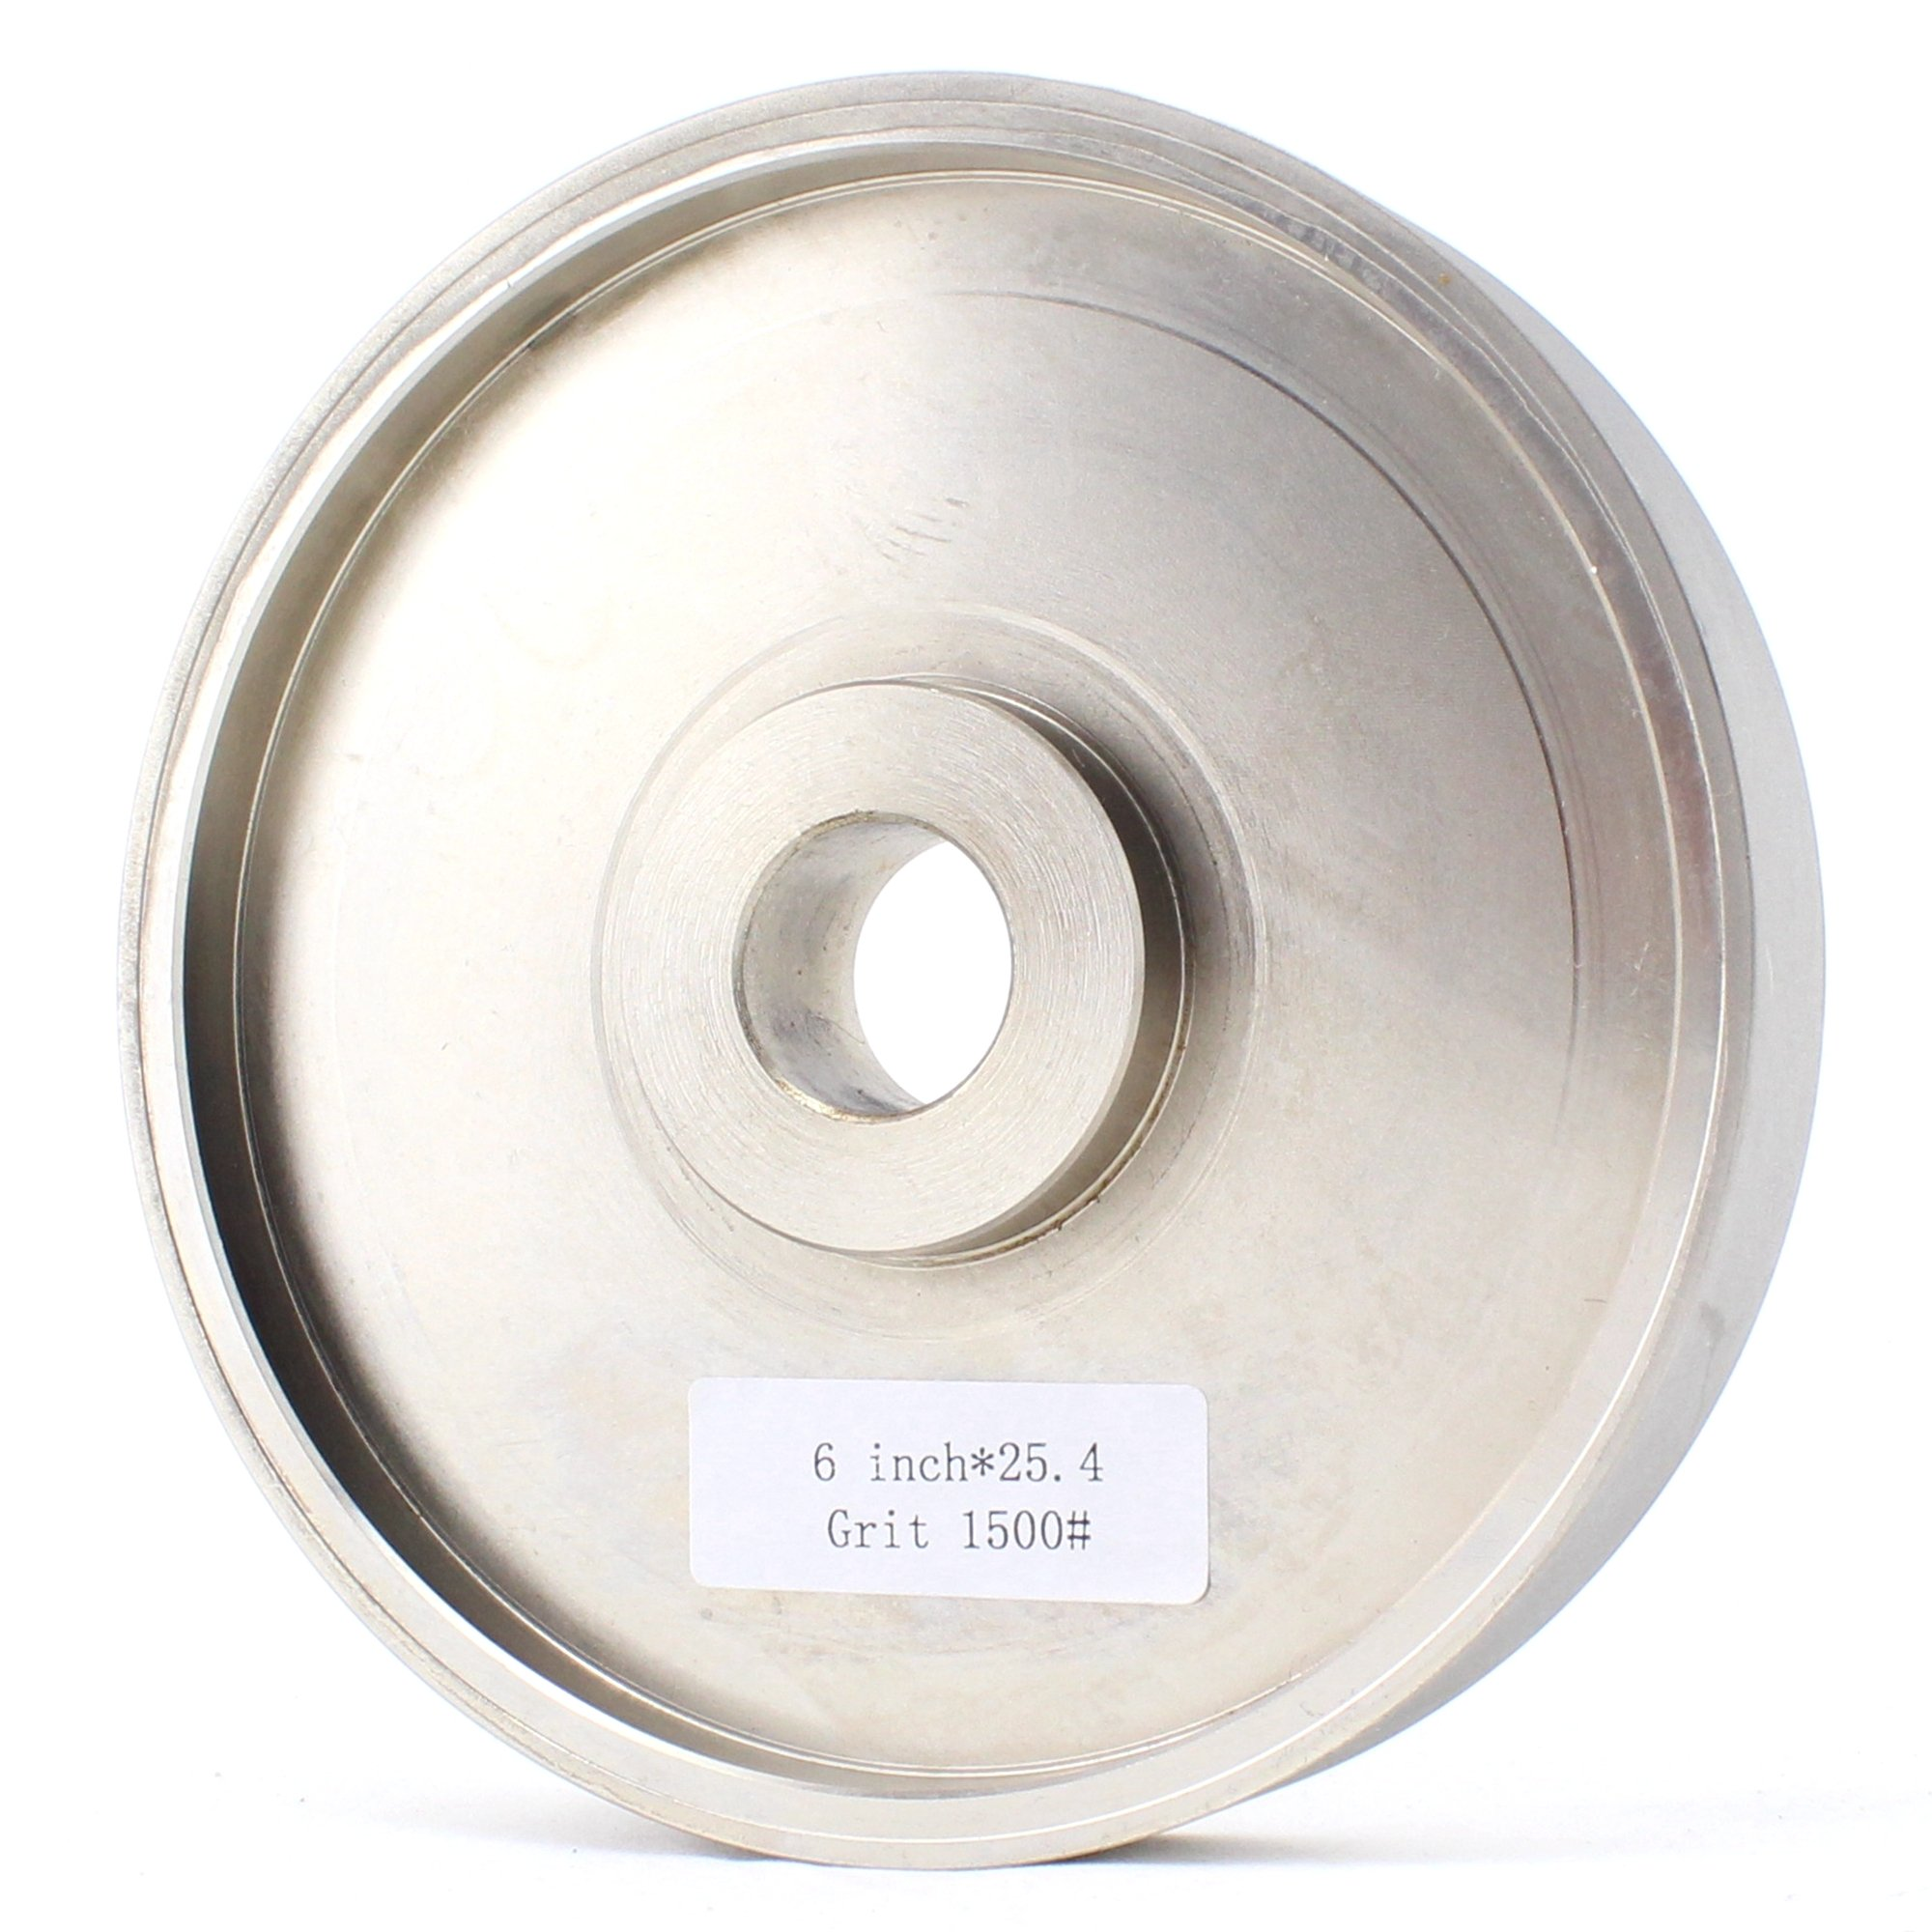 JINGLING 6'' inch Diamond Electroplated Facing Grinding Wheel Bore Size 1'' Grit 1500 for Lapidary Gems Glass Tile Marble Pack of 1 Piece by JING LING